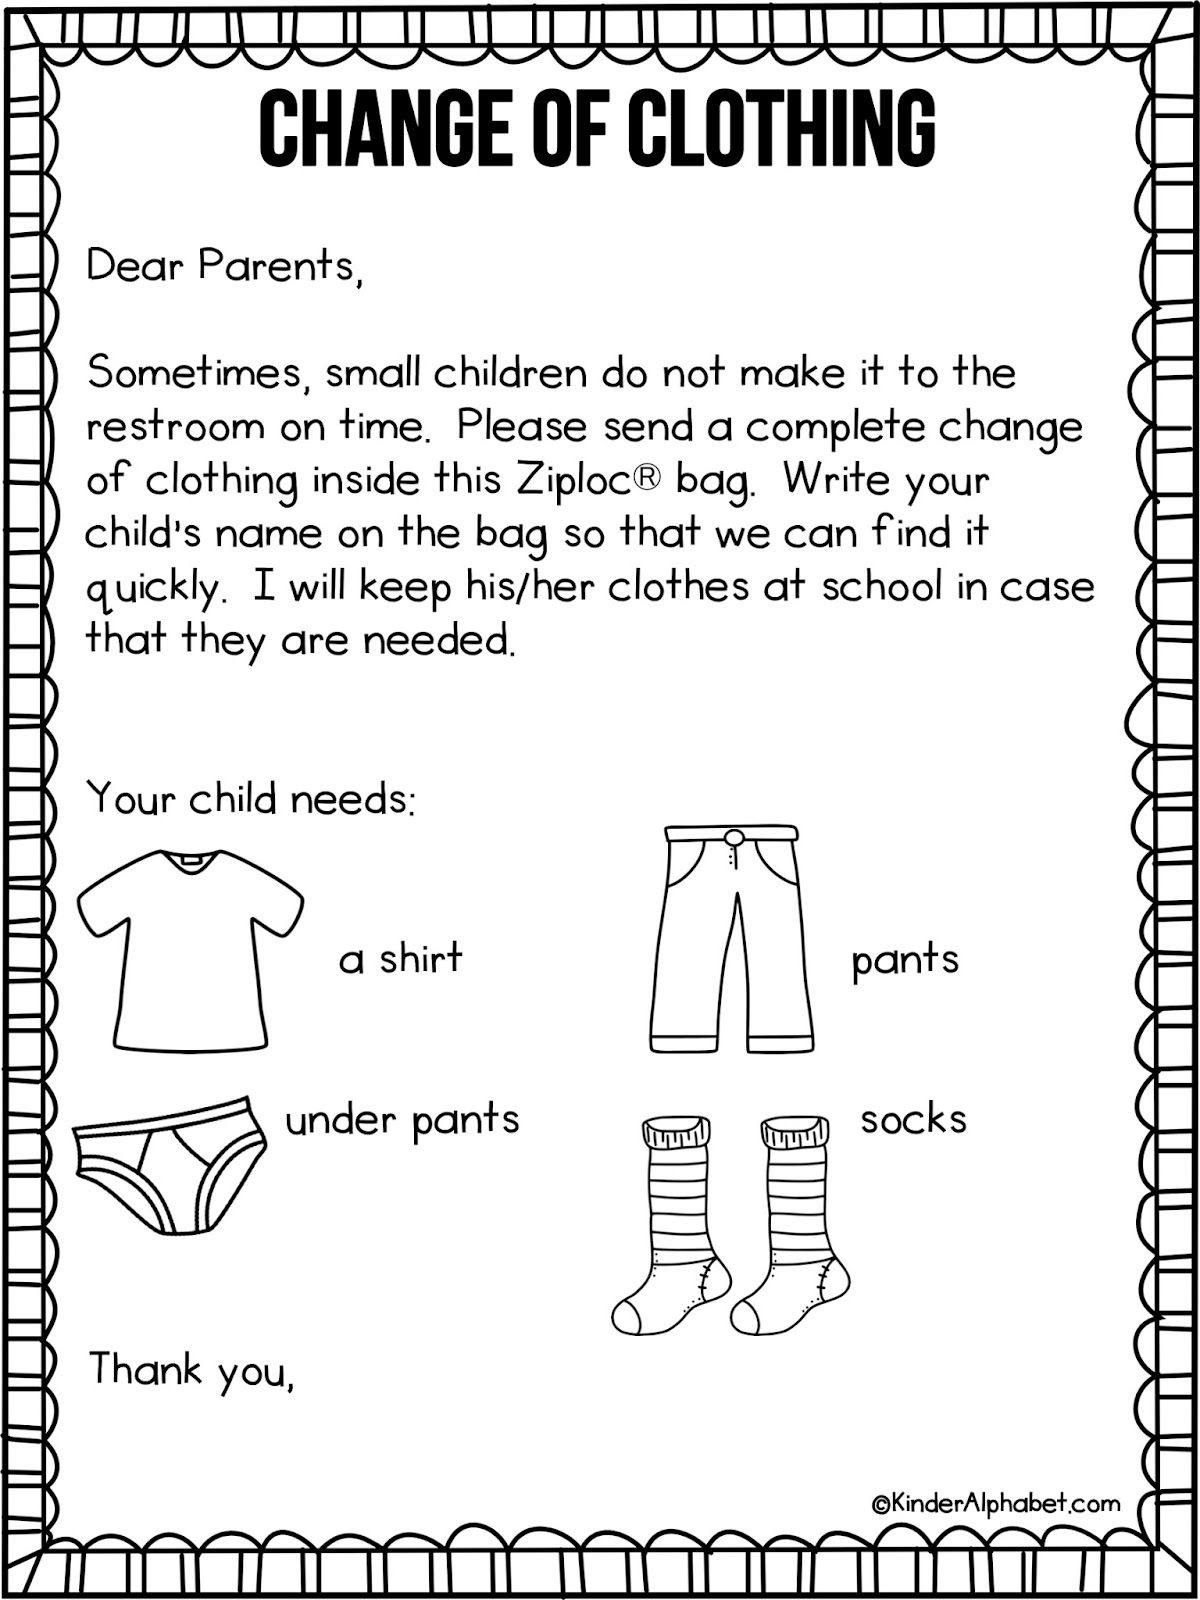 parent letter for change of clothing free from kinderalphabet via